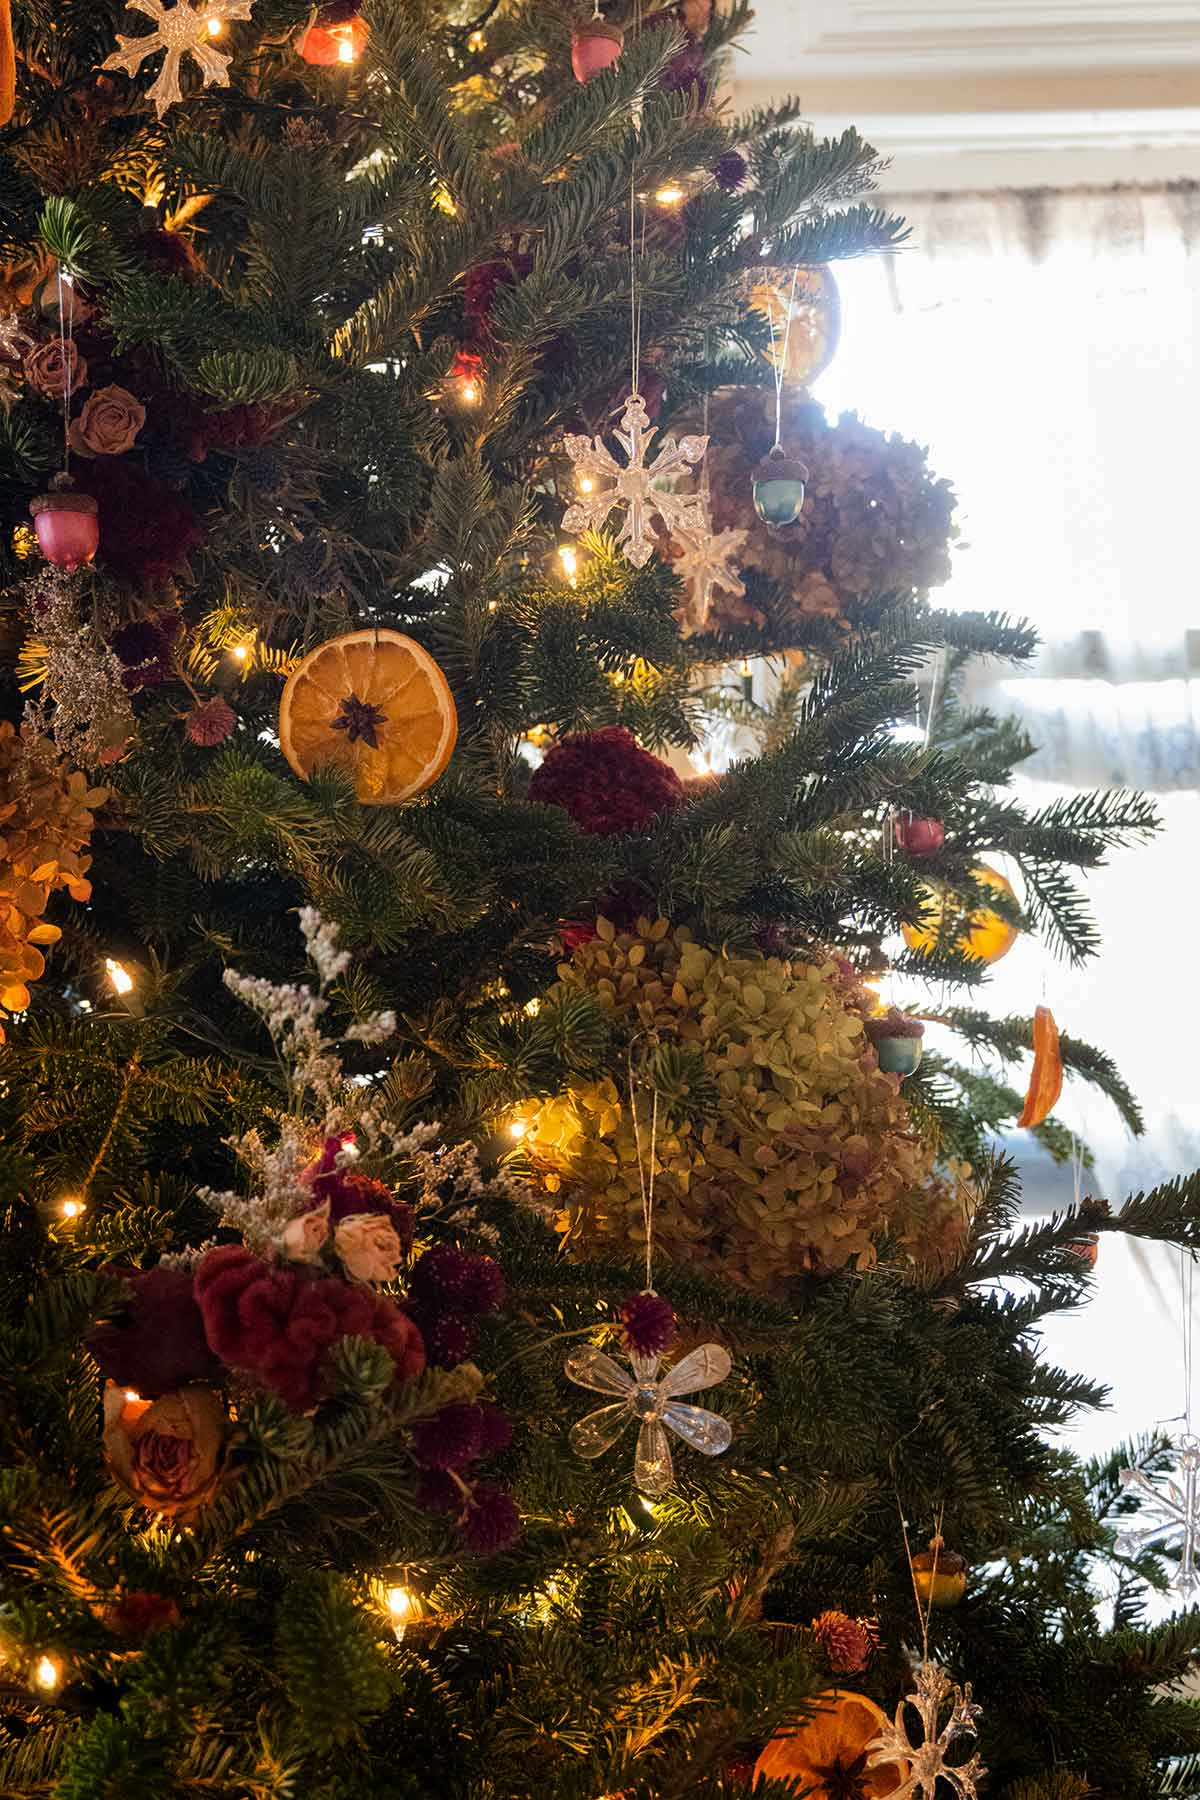 A Christmas tree in front of a bright window, decorated with flowers, orange slices and other bright ornaments.